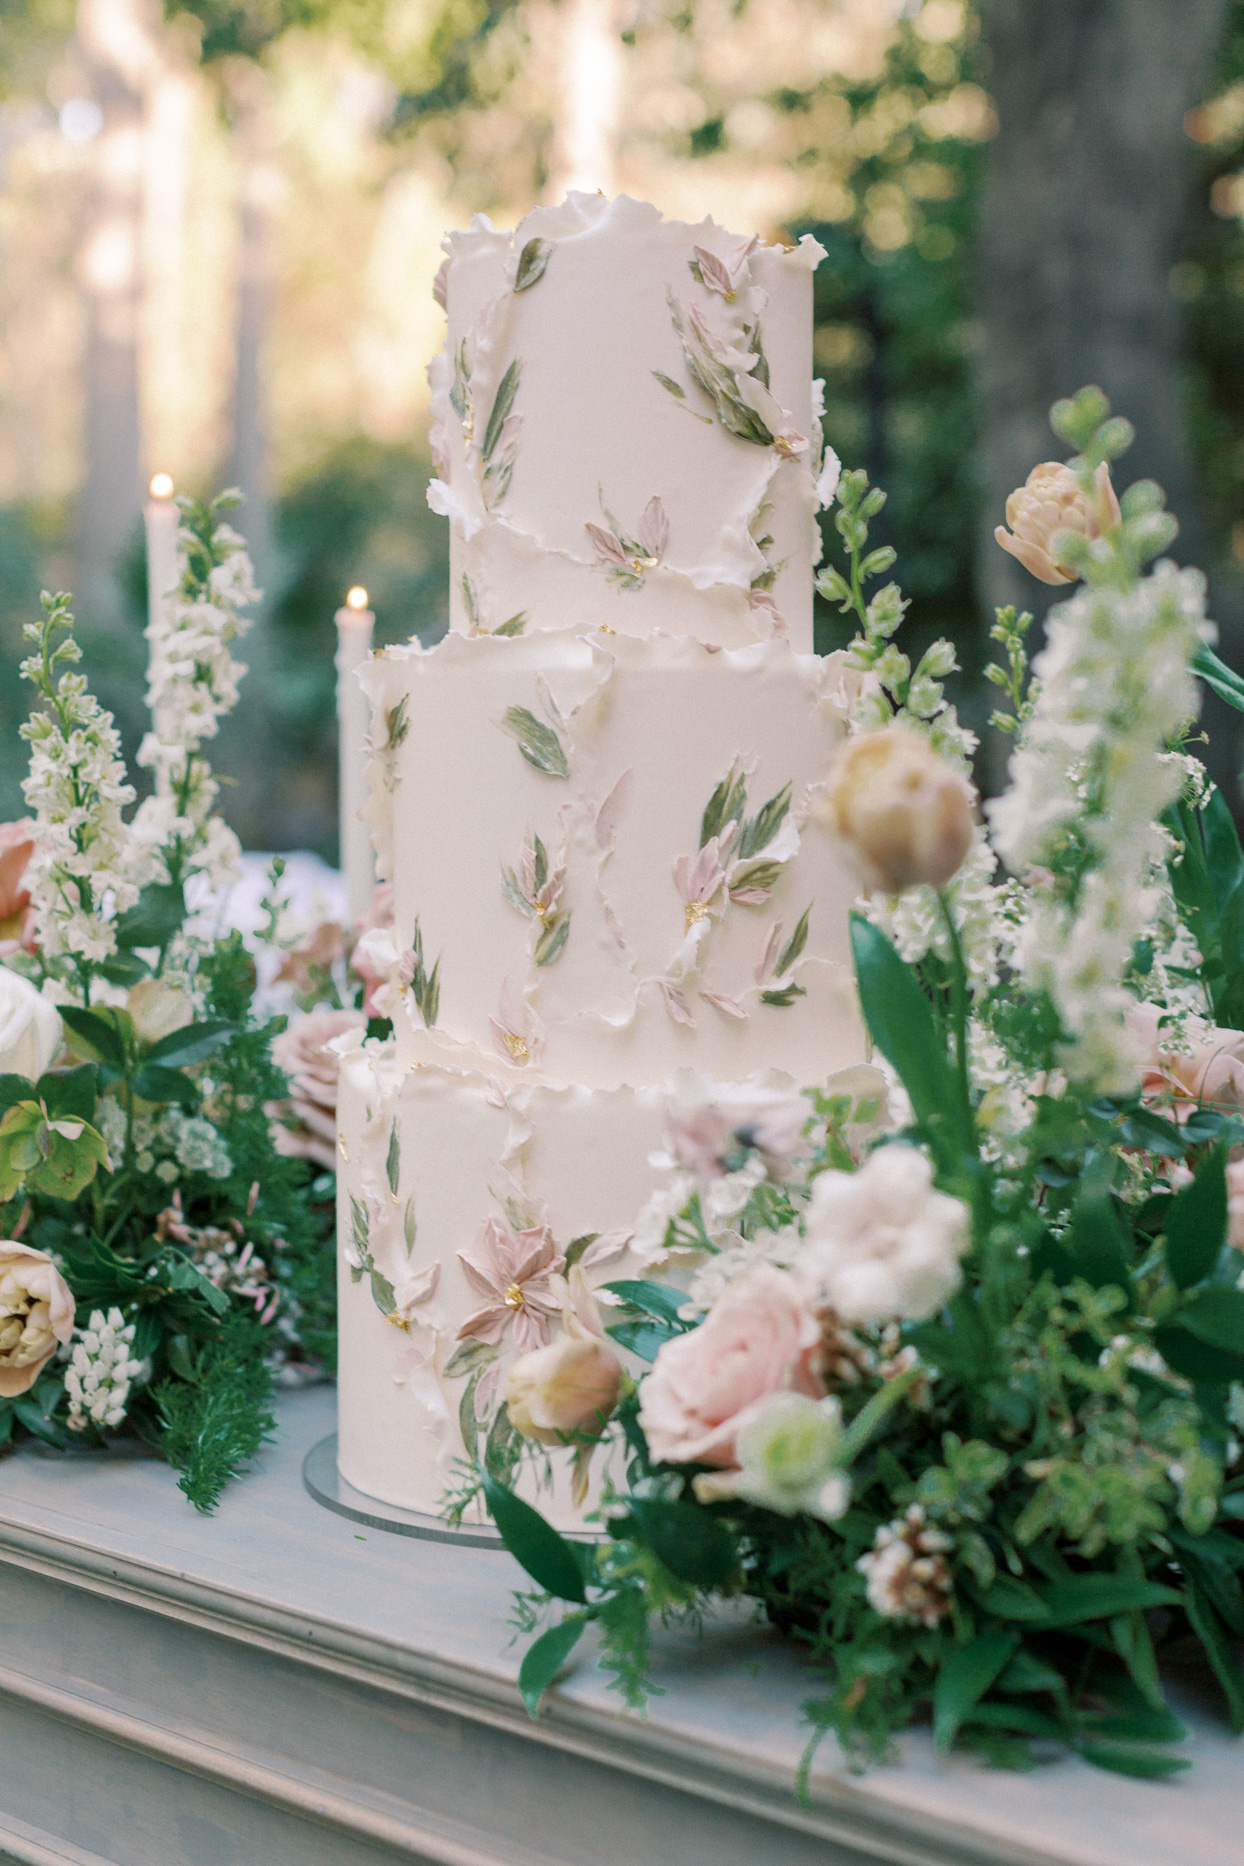 three-tiered wedding cake with frosting flowers